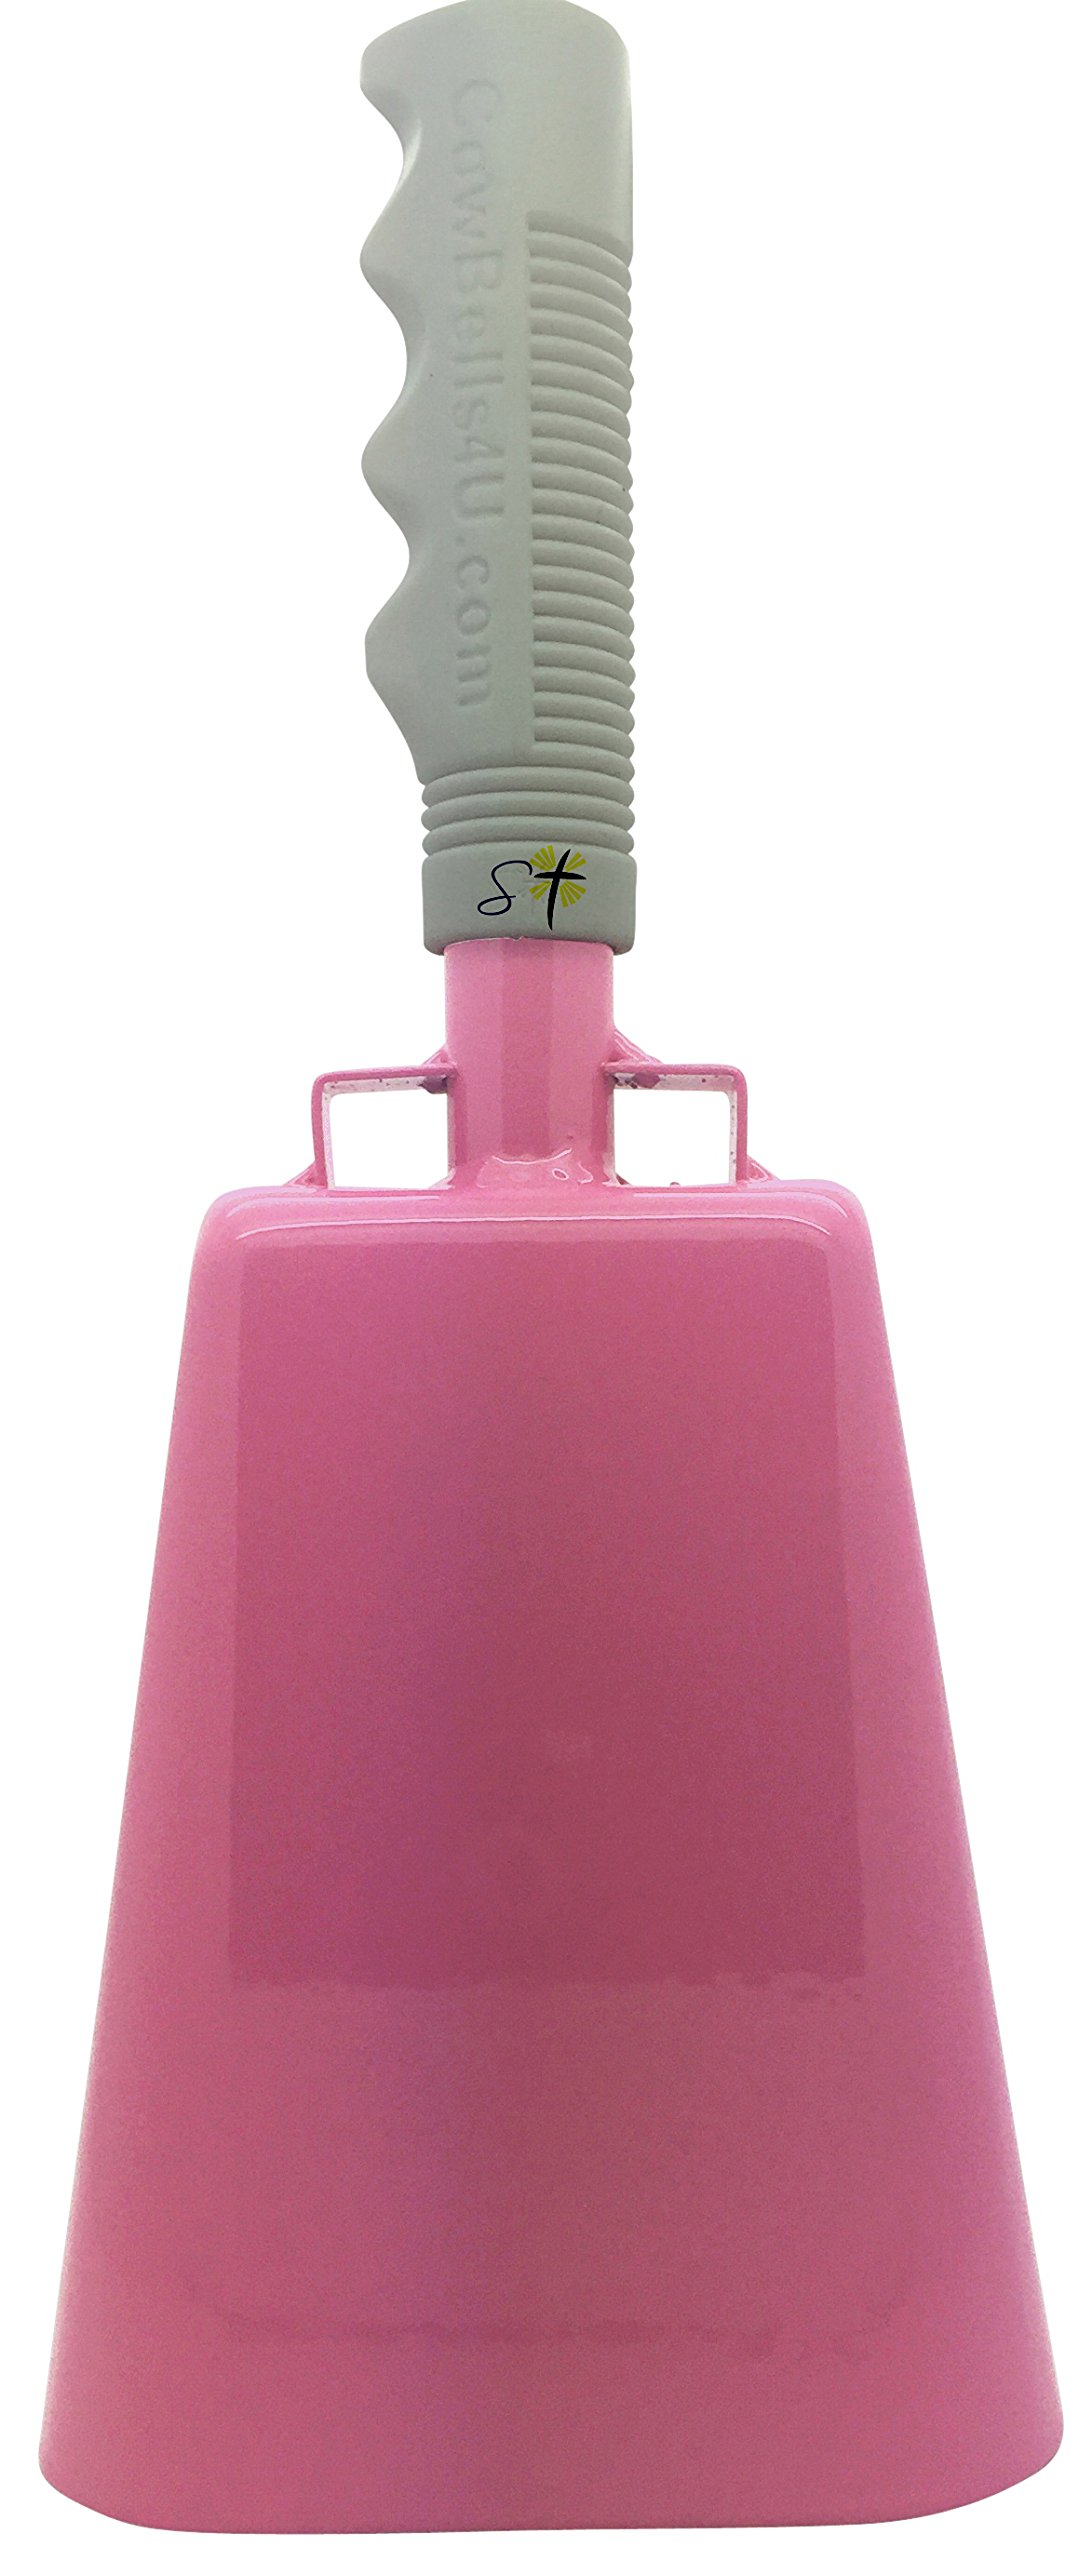 11.2 inch Pink Bell White Handle Cowbell with Stick Grip Handle Used for Cheering at Sporting Events - Cow Bell by Stewart TradingTM